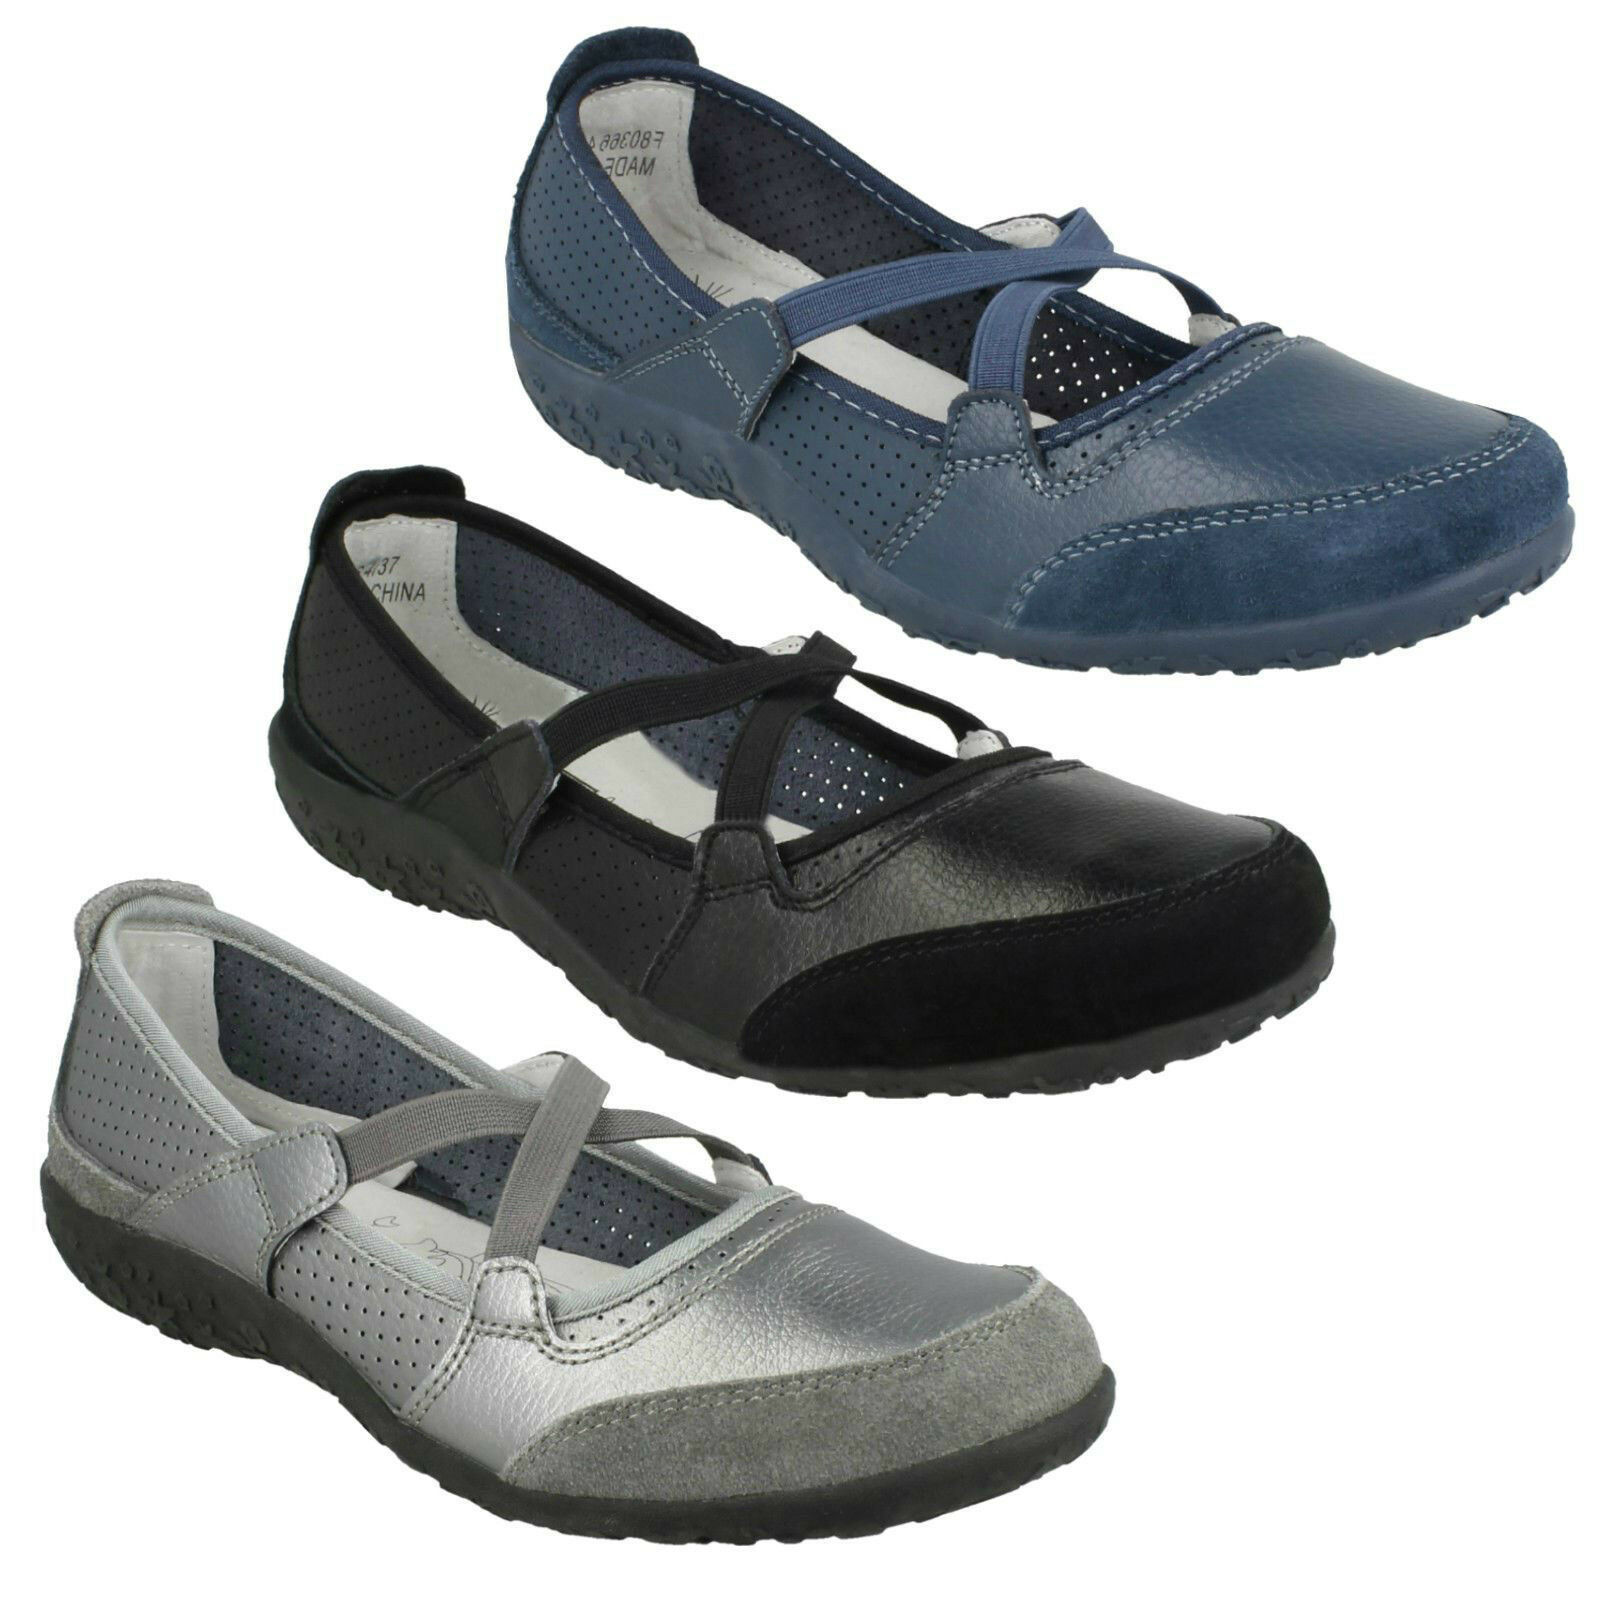 DOWN TO EARTH COMFORT LADIES FLAT SHOES ELASTIC STRAP CASUAL PUMPS SIZES F8R0366